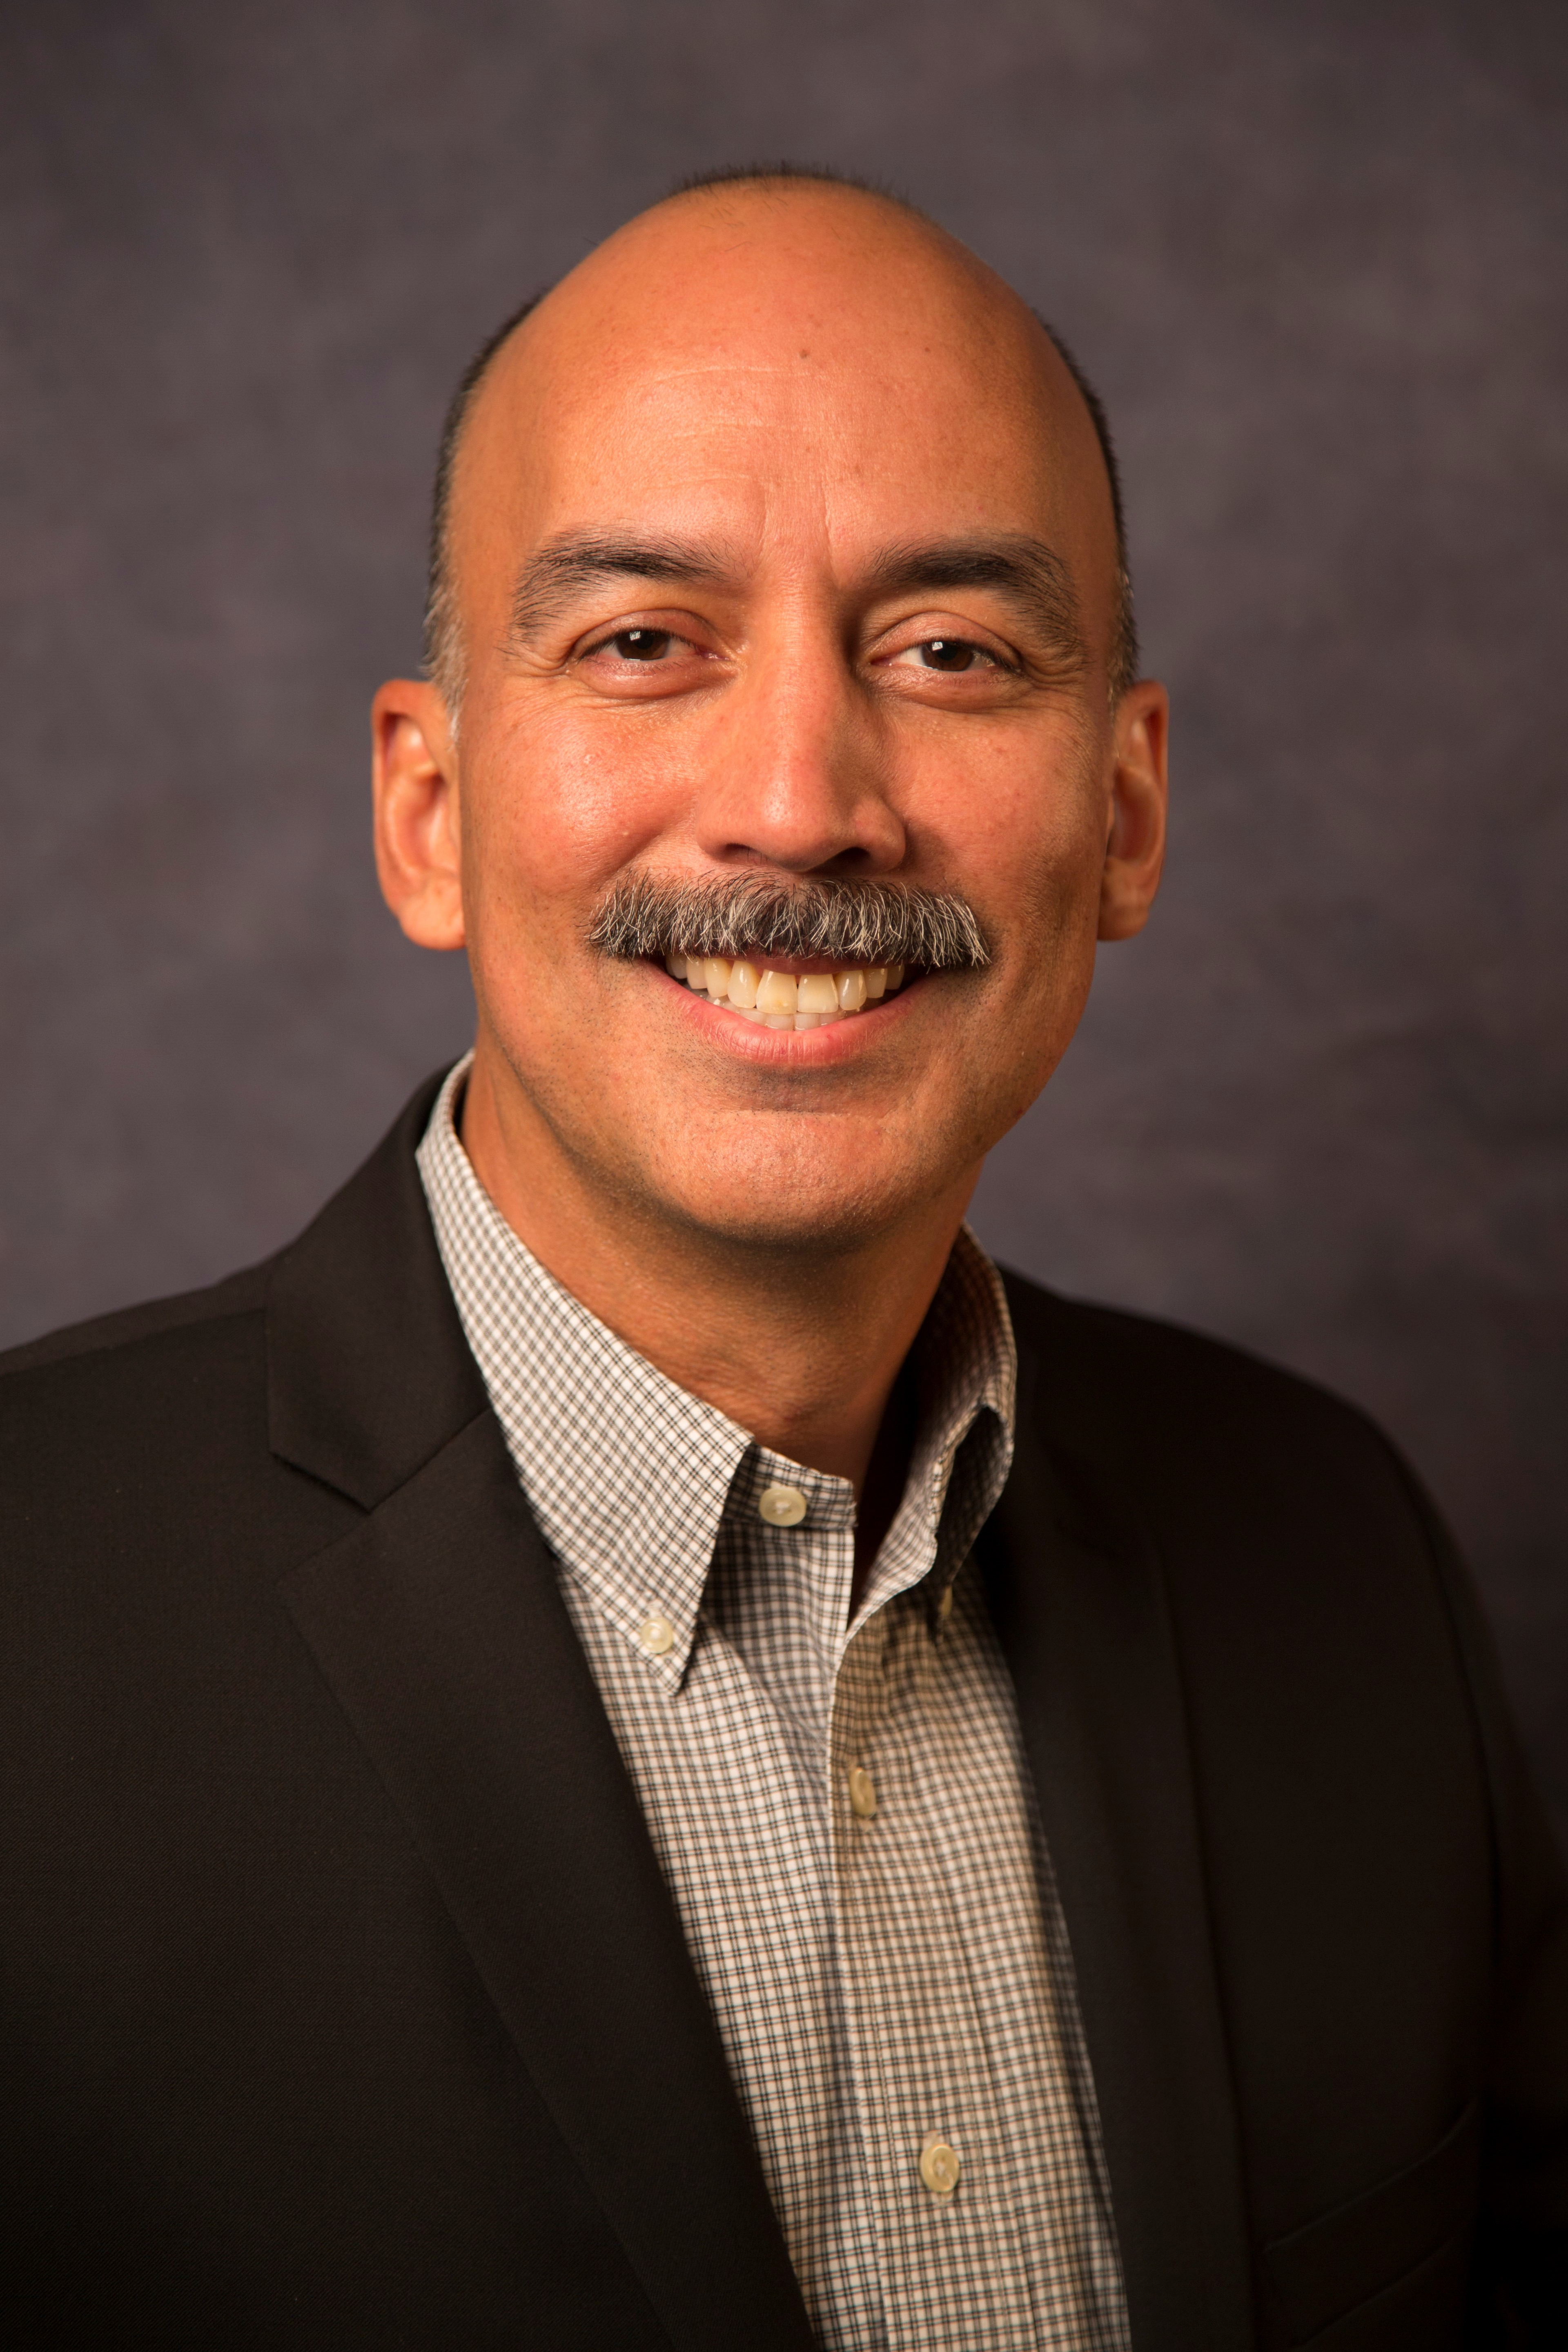 City Manager Bill Gallardo